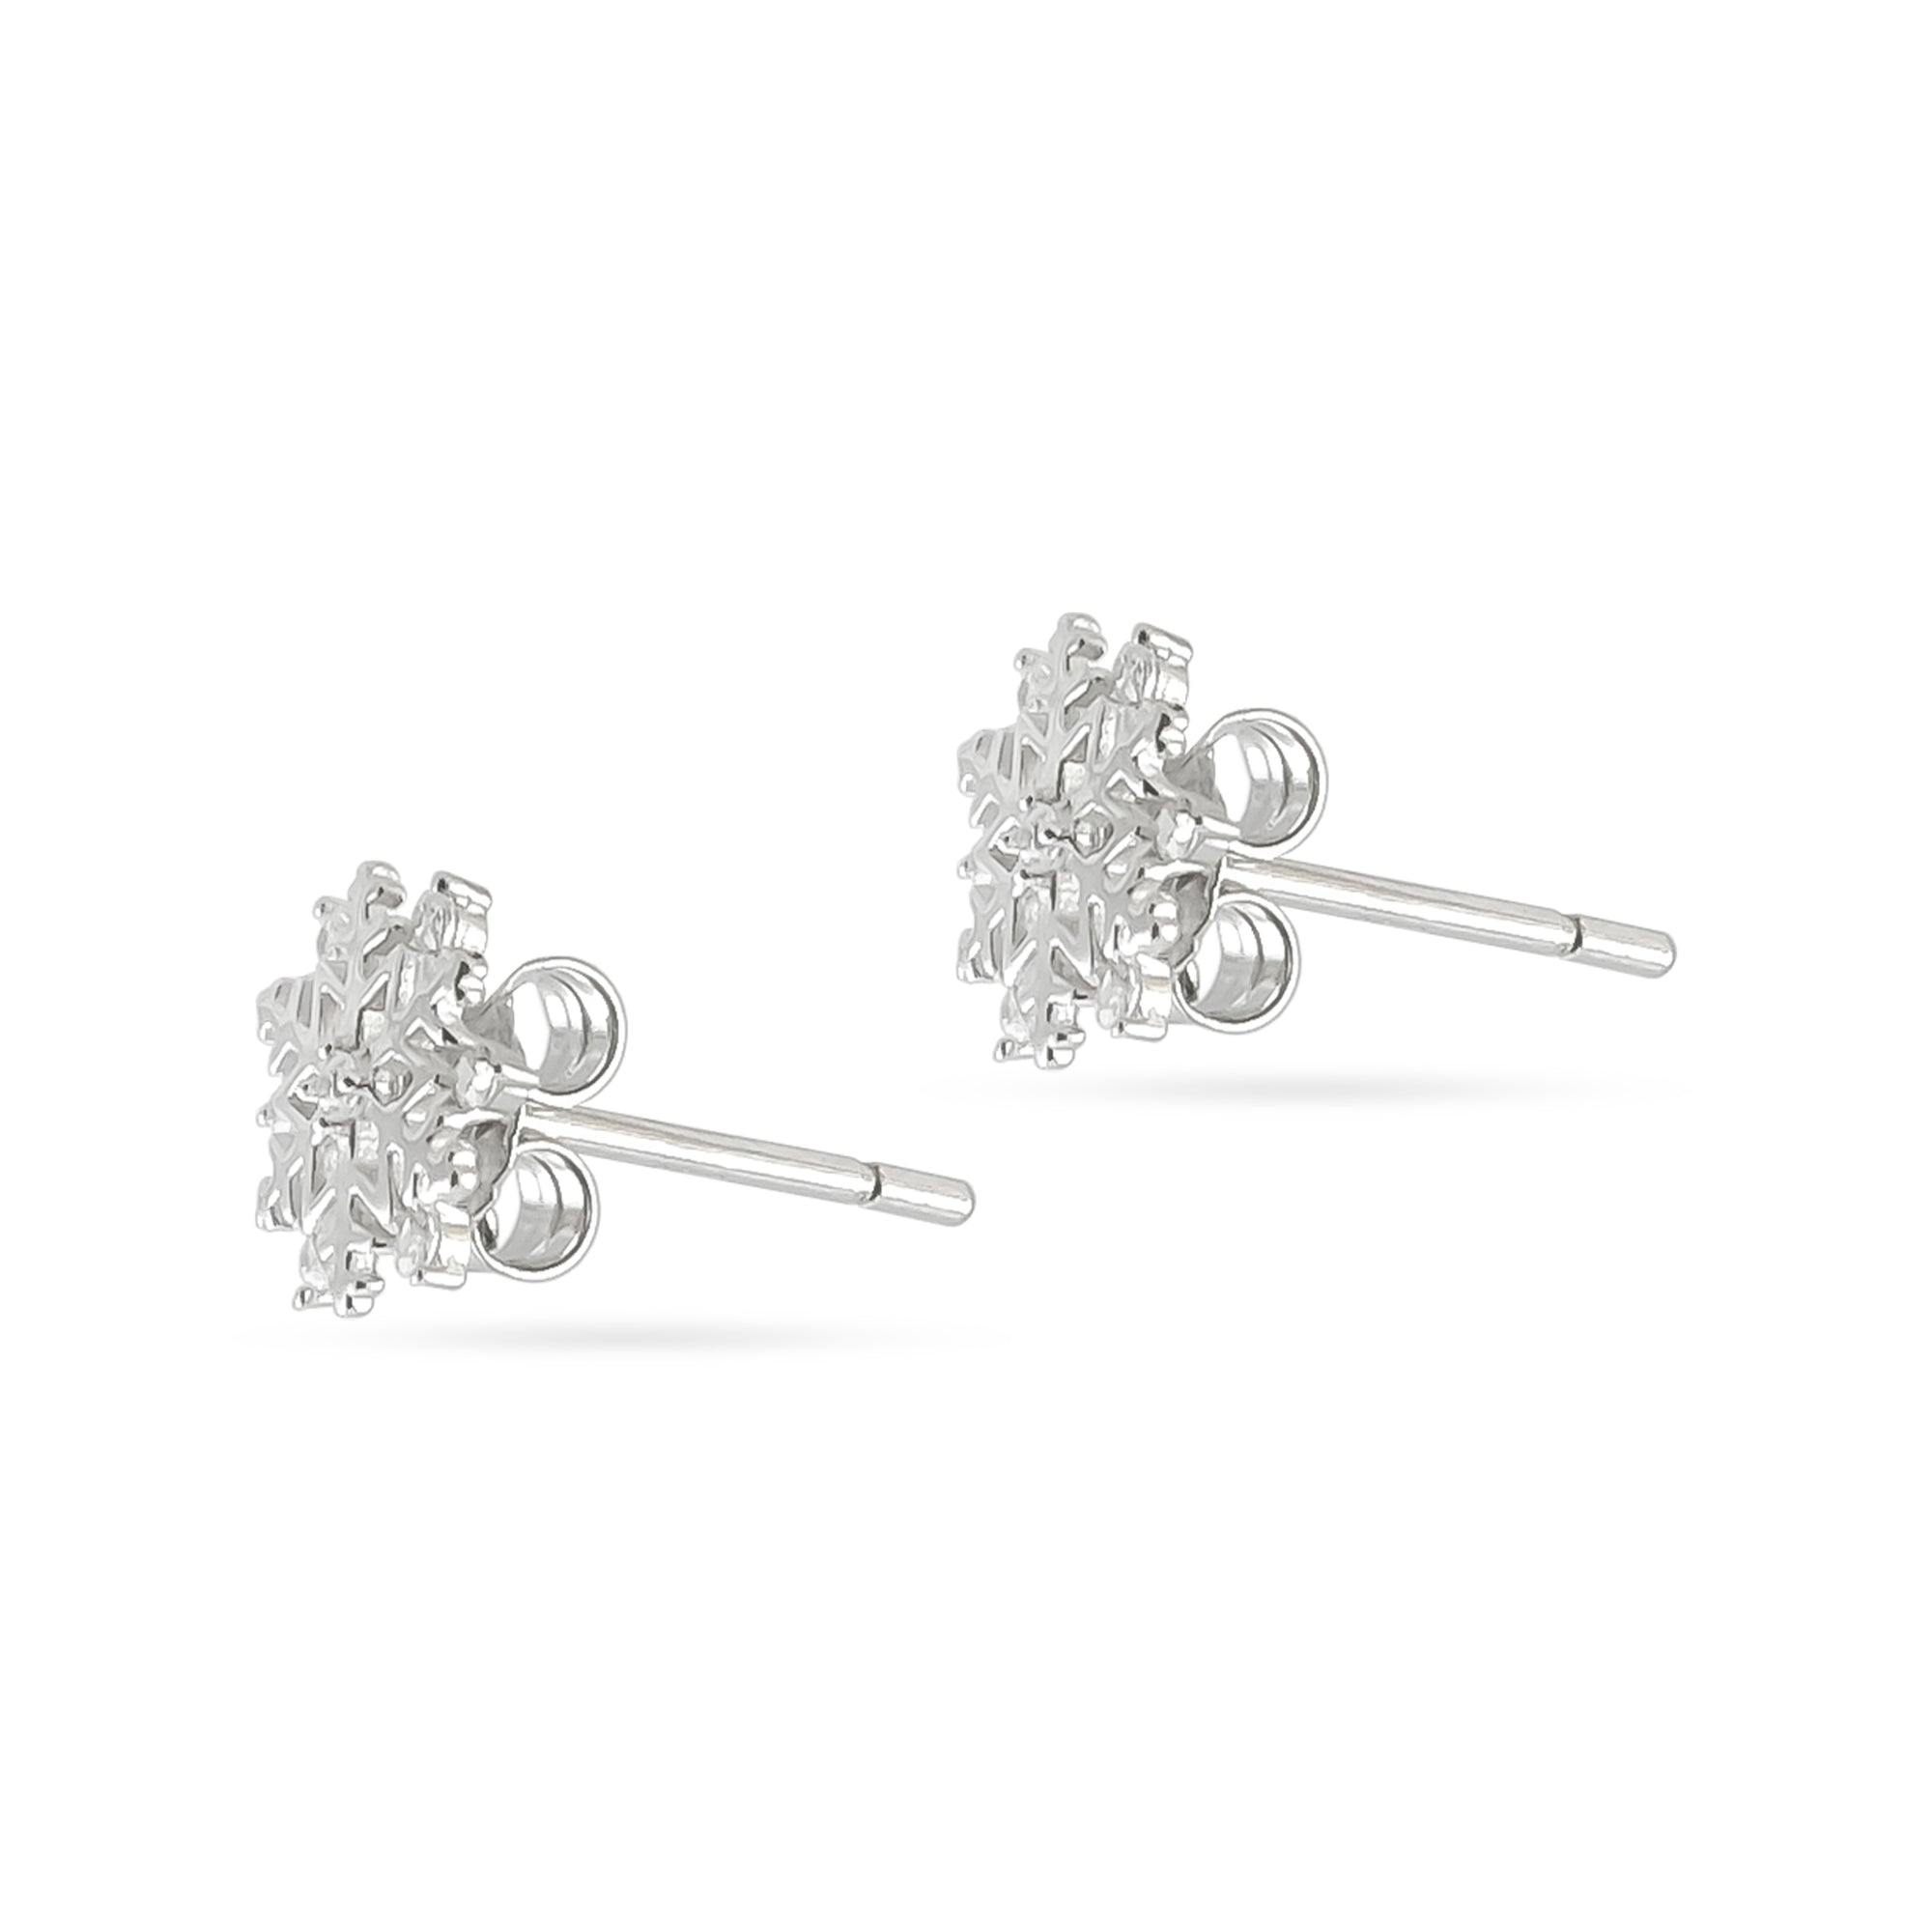 9ct White Gold Snowflake Stud Earrings